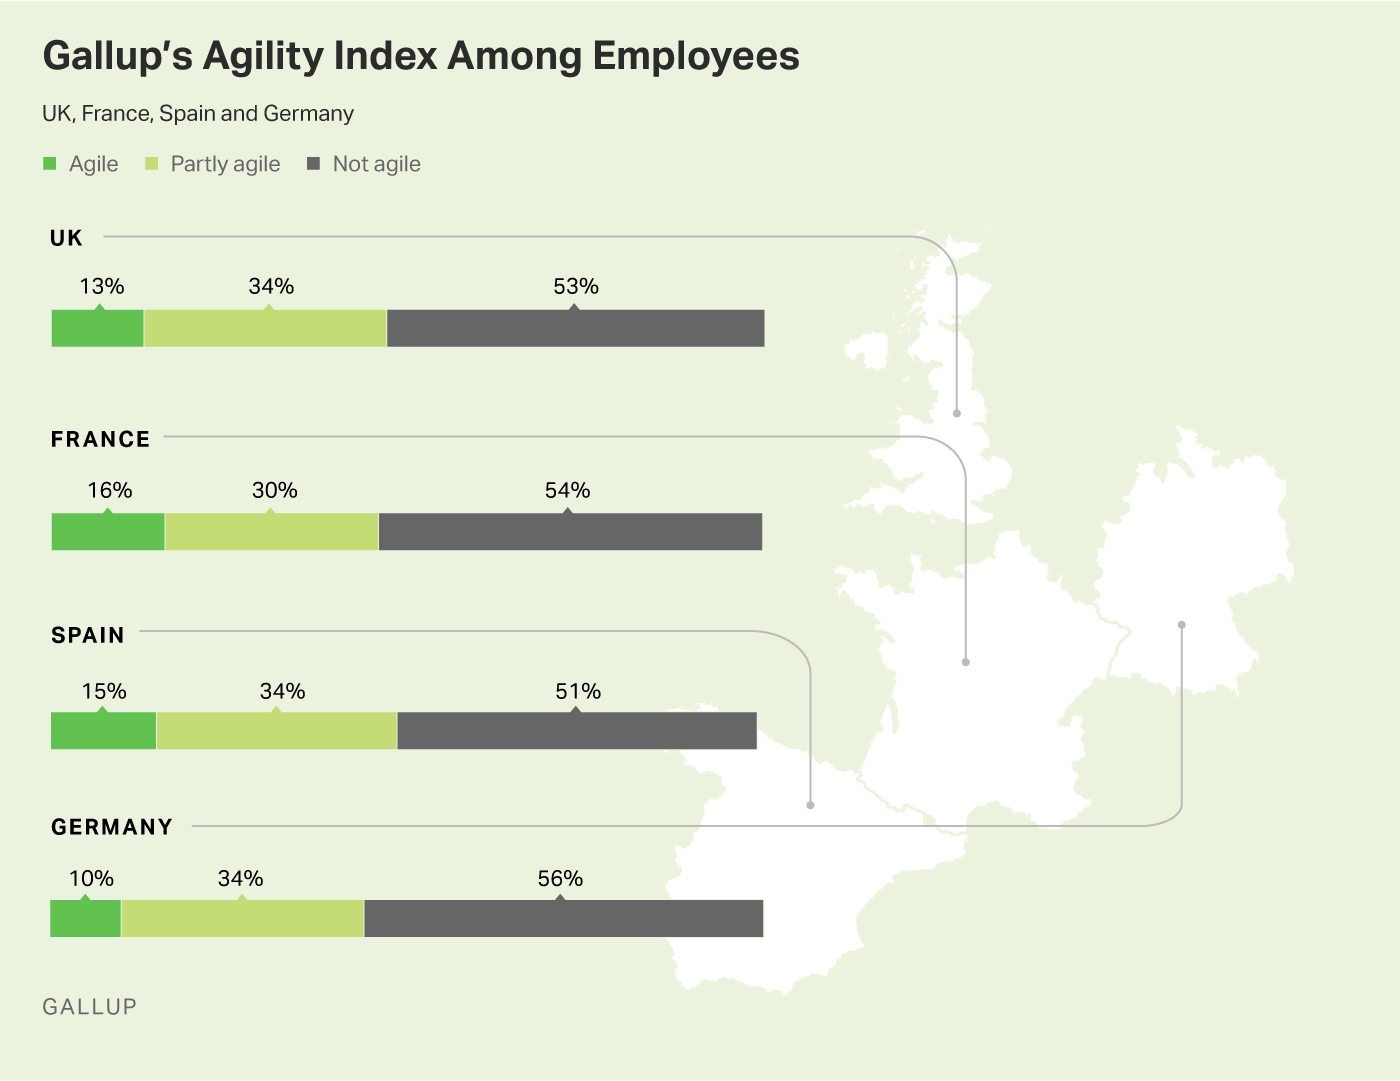 Graphic: Gallup's Agility INdex Among Employees in the UK, France, Spain, and GErmany.